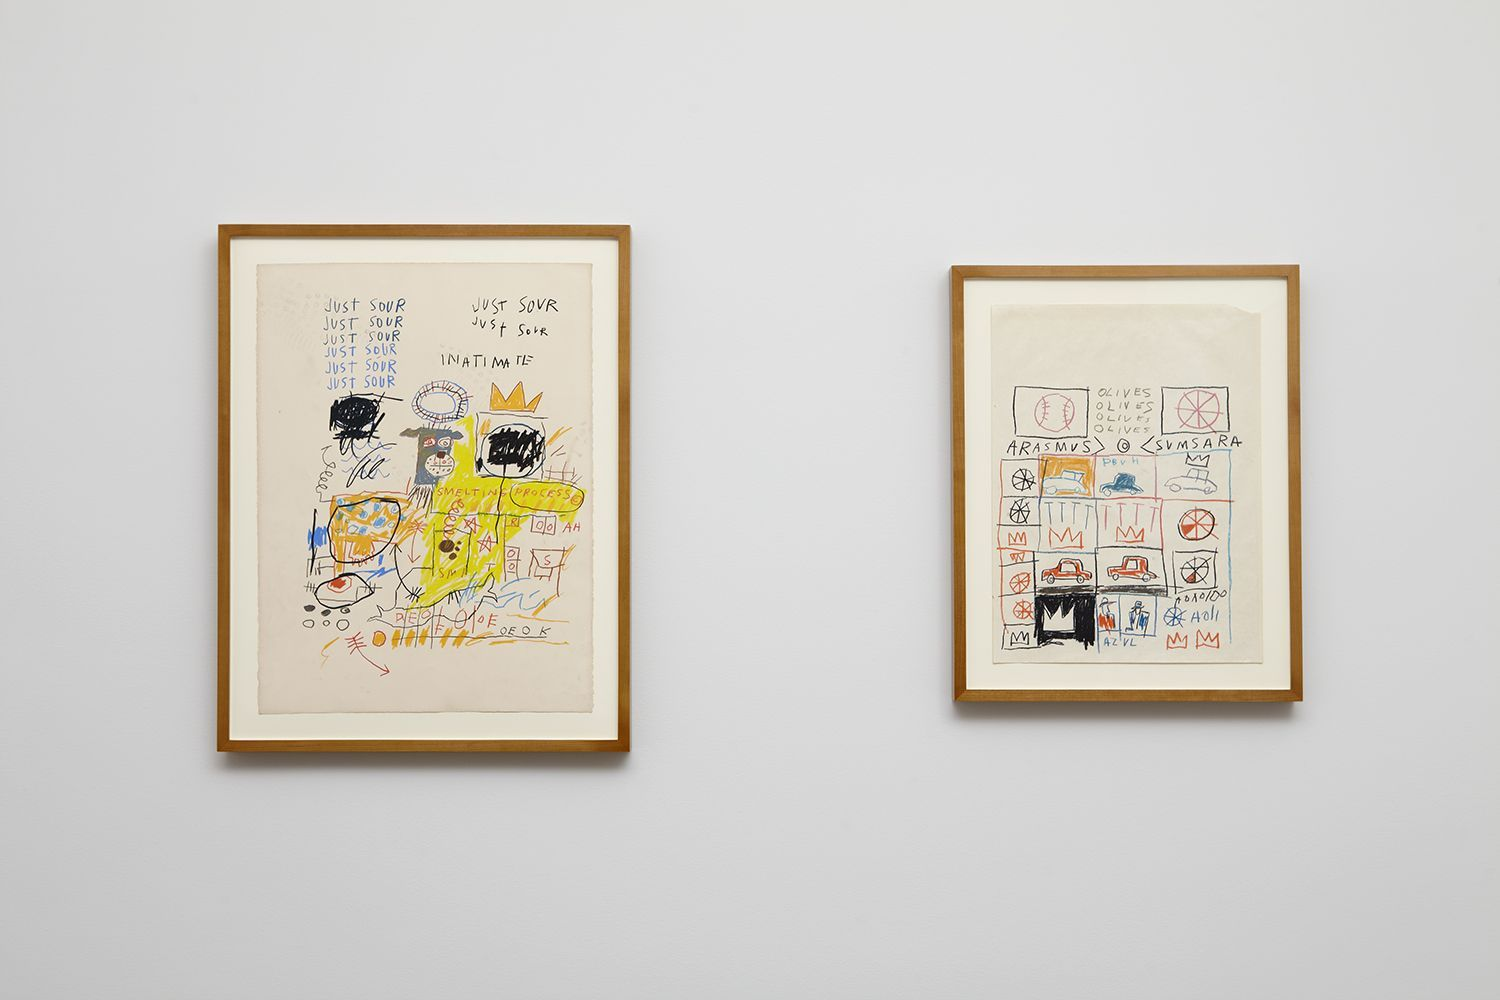 Installation view of Jean-Michel Basquiat Drawing: Work from the Schorr Family Collection, April 30 - June 12, 2014.